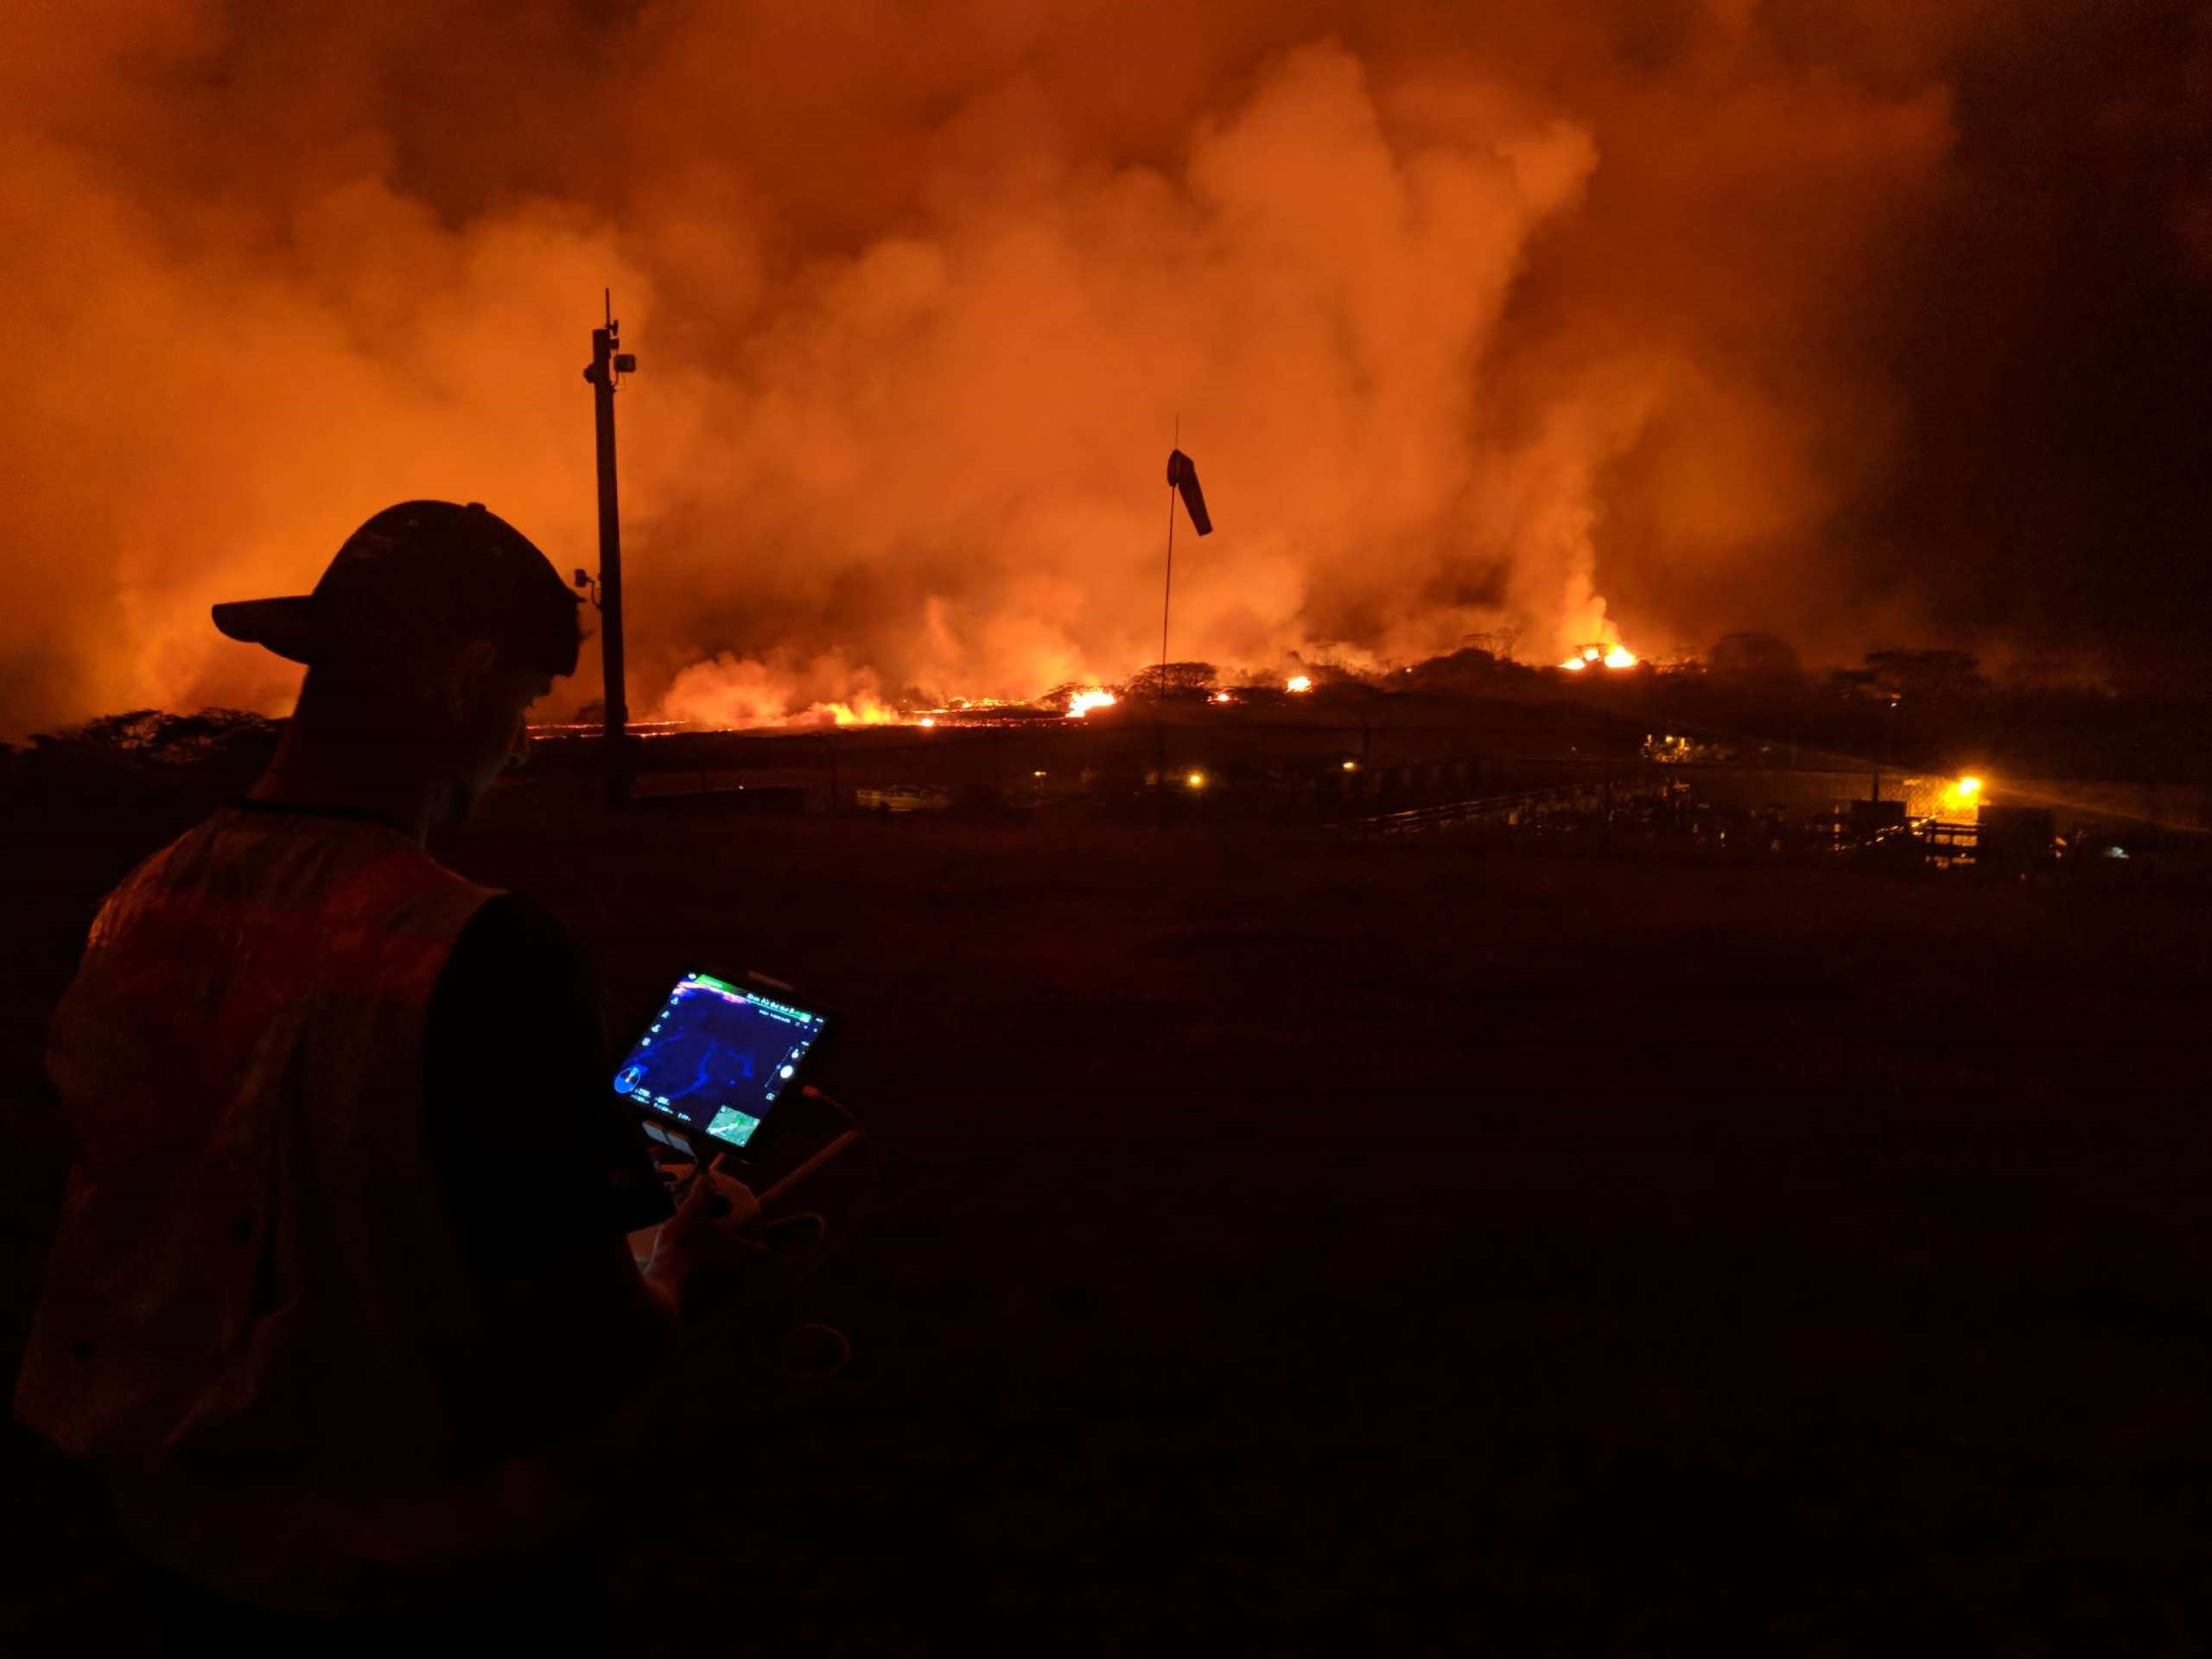 Thermal cameras allowed the team to fly drones at night and through dense volcanic smoke